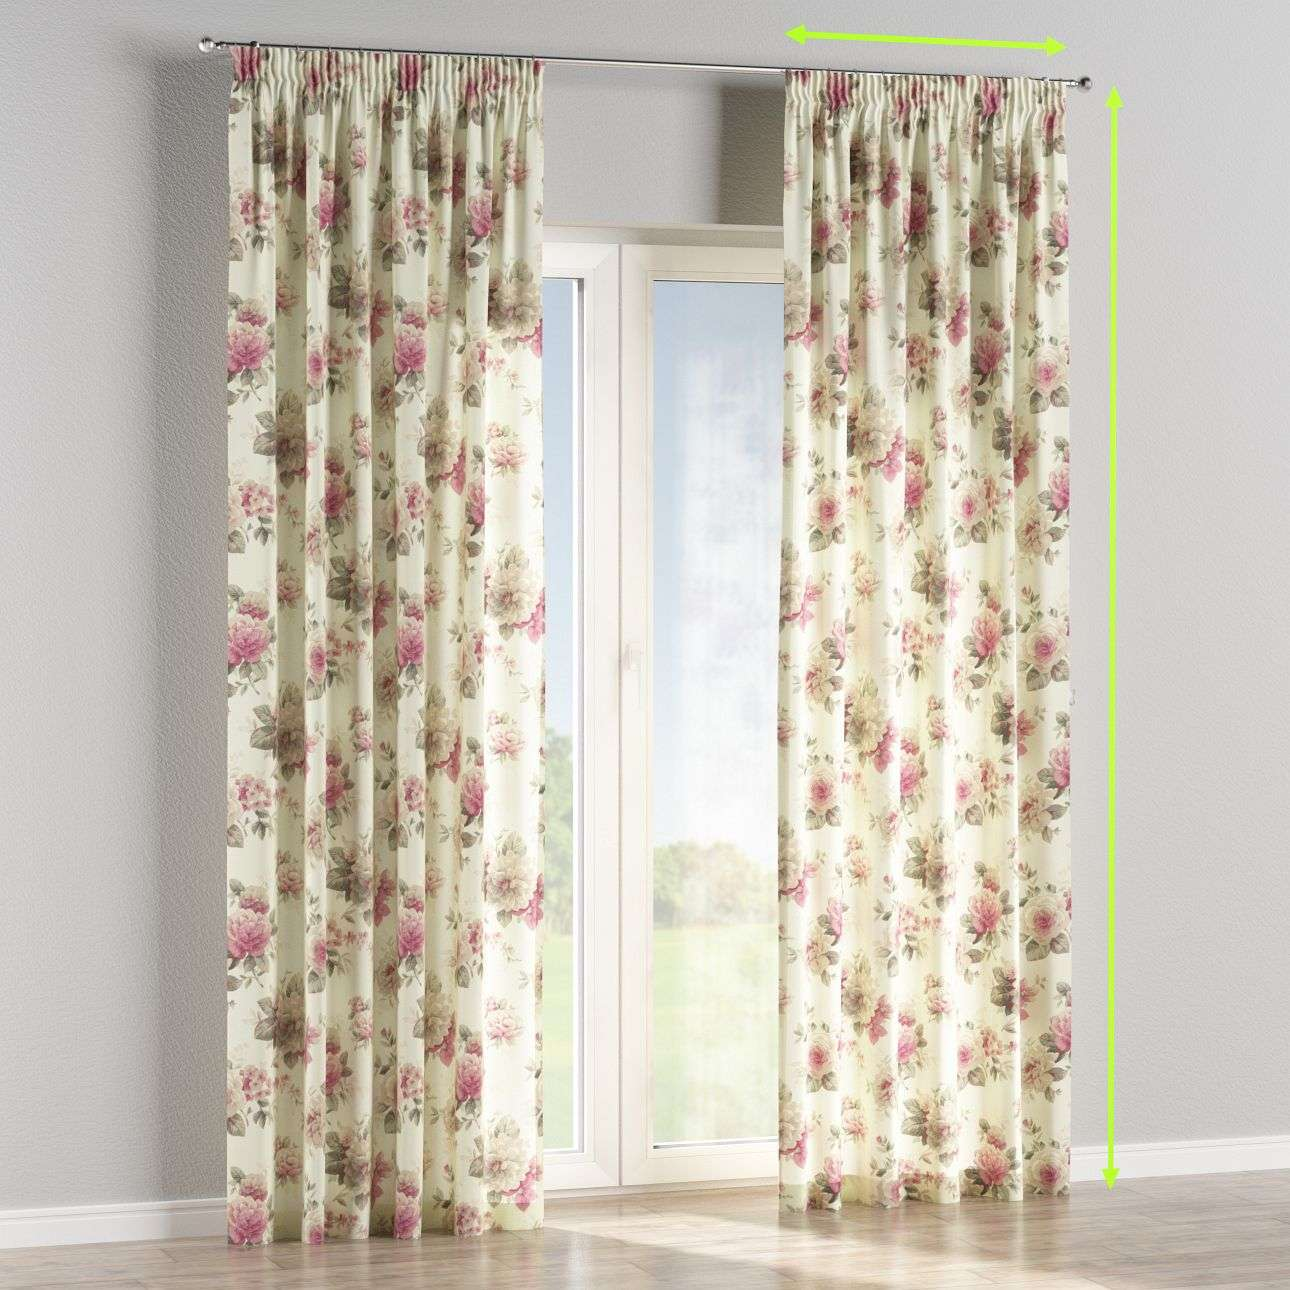 Pencil pleat curtains in collection Mirella, fabric: 141-07